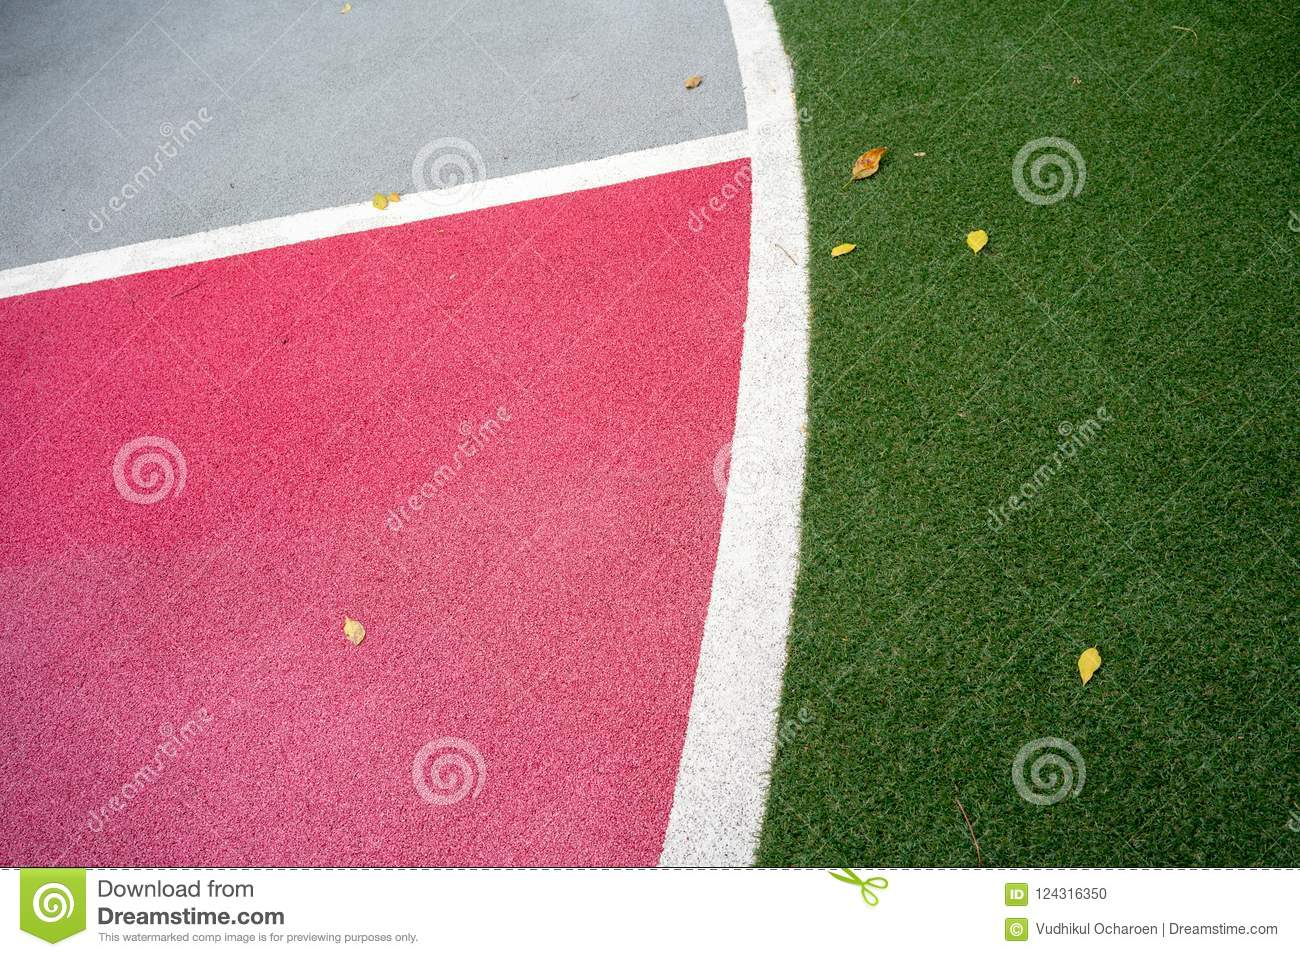 Safety playground and sports floor with soft rubber crumb for ba